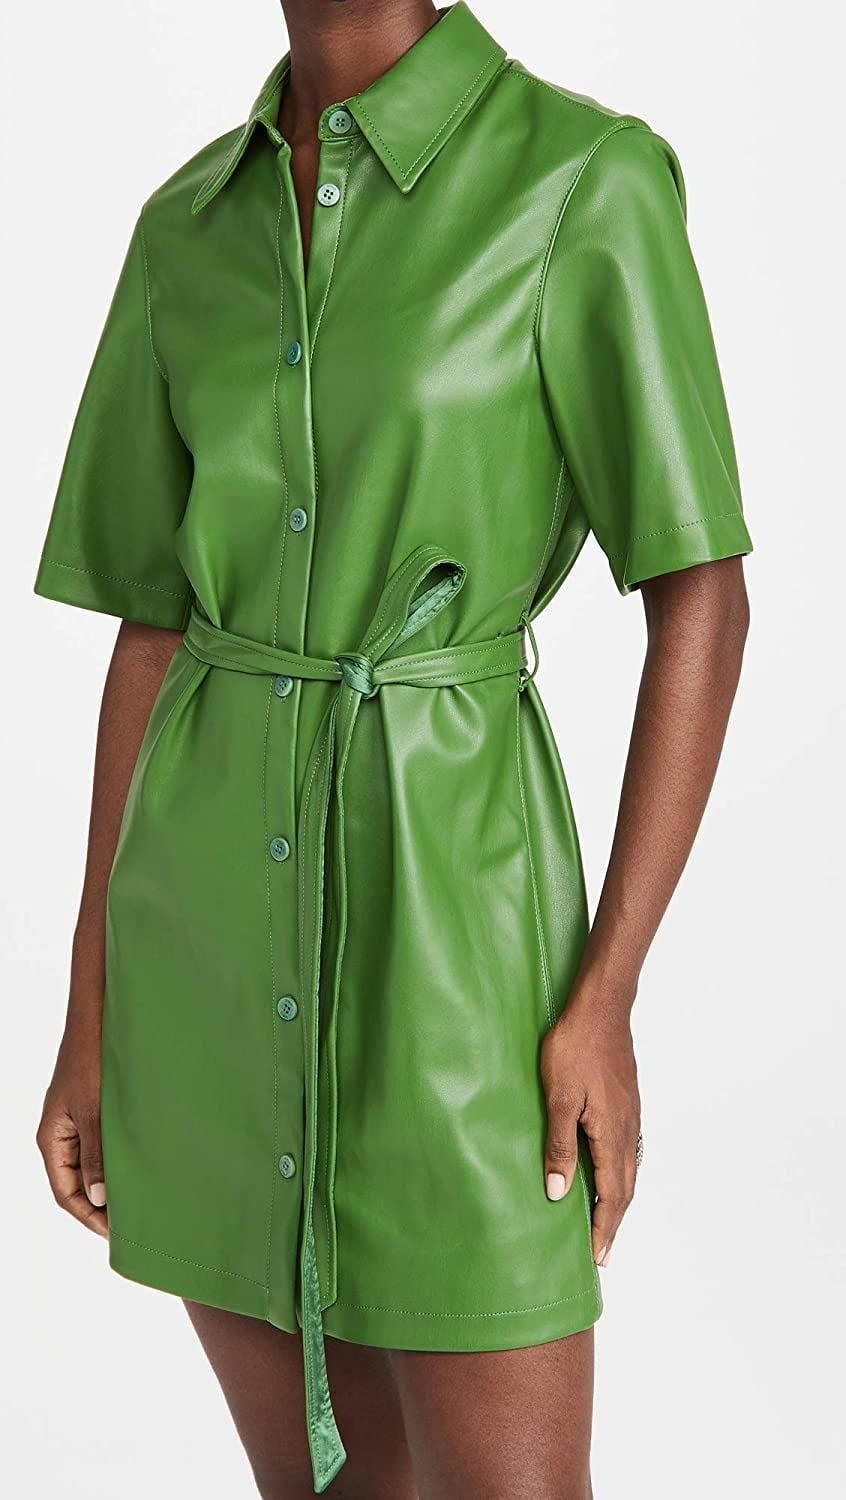 <p>All eyes will be on you in this statement-making <span>Staud Blaze Dress</span> ($295).</p>